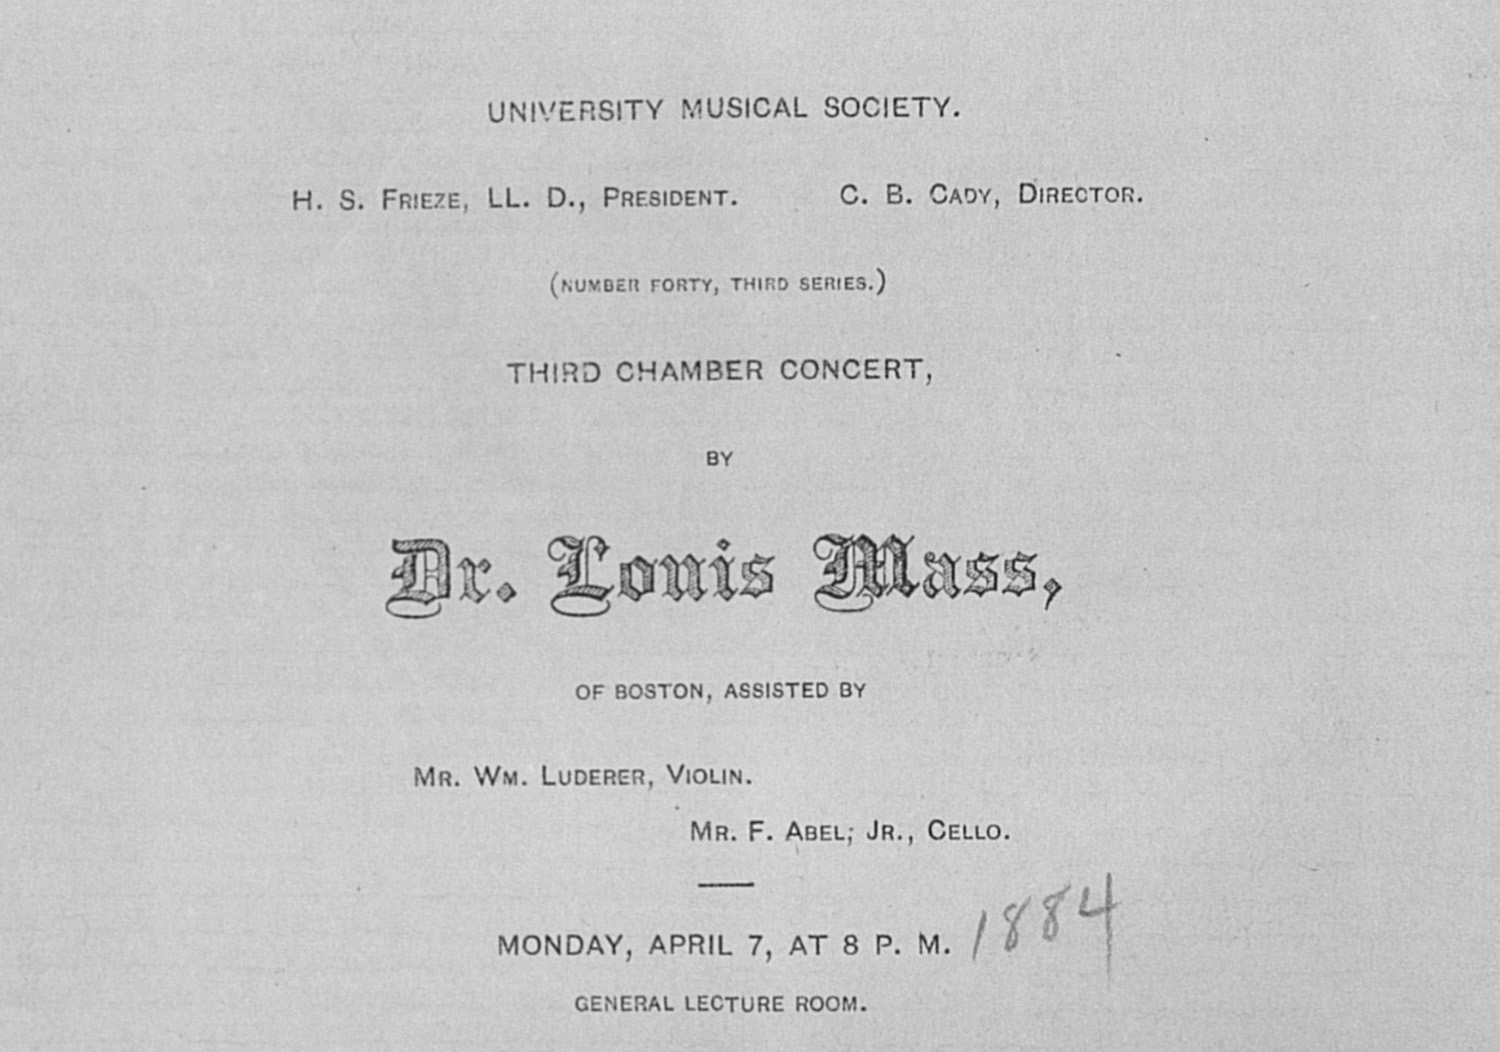 UMS Concert Program, April 7: Third Chamber Concert -- Dr. Louis Mass image